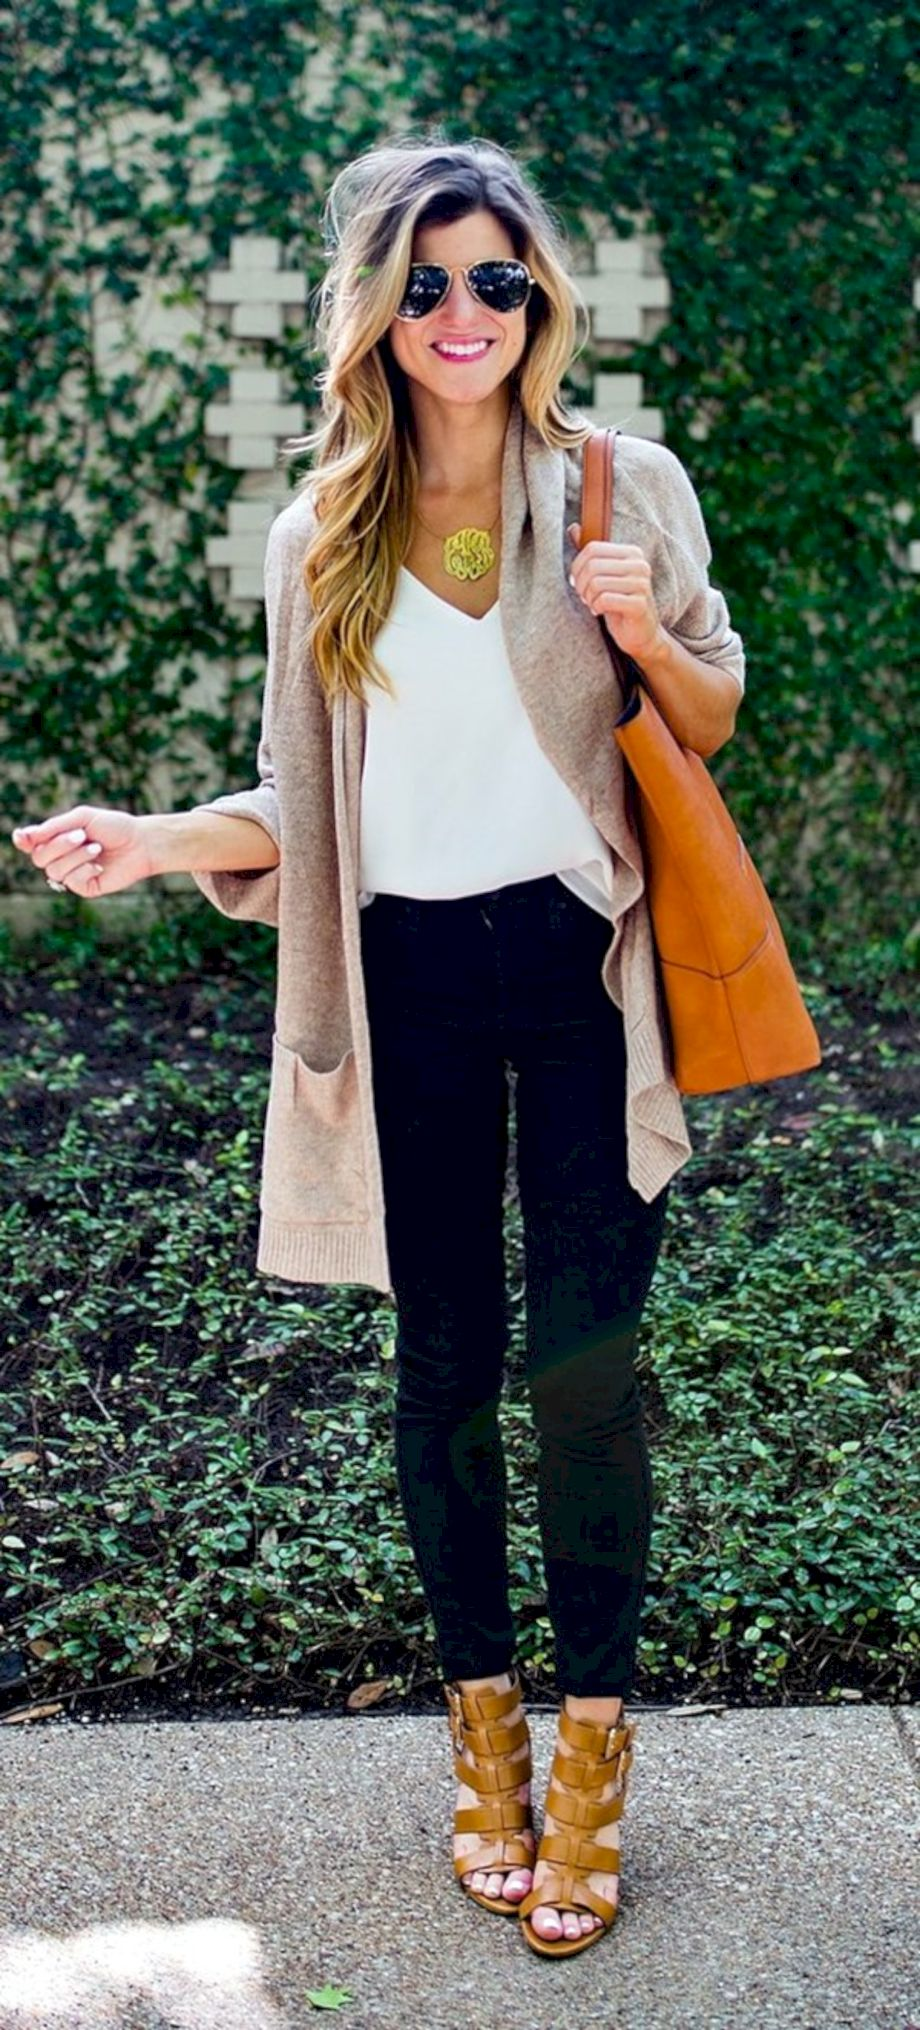 Cardigan outfit 26